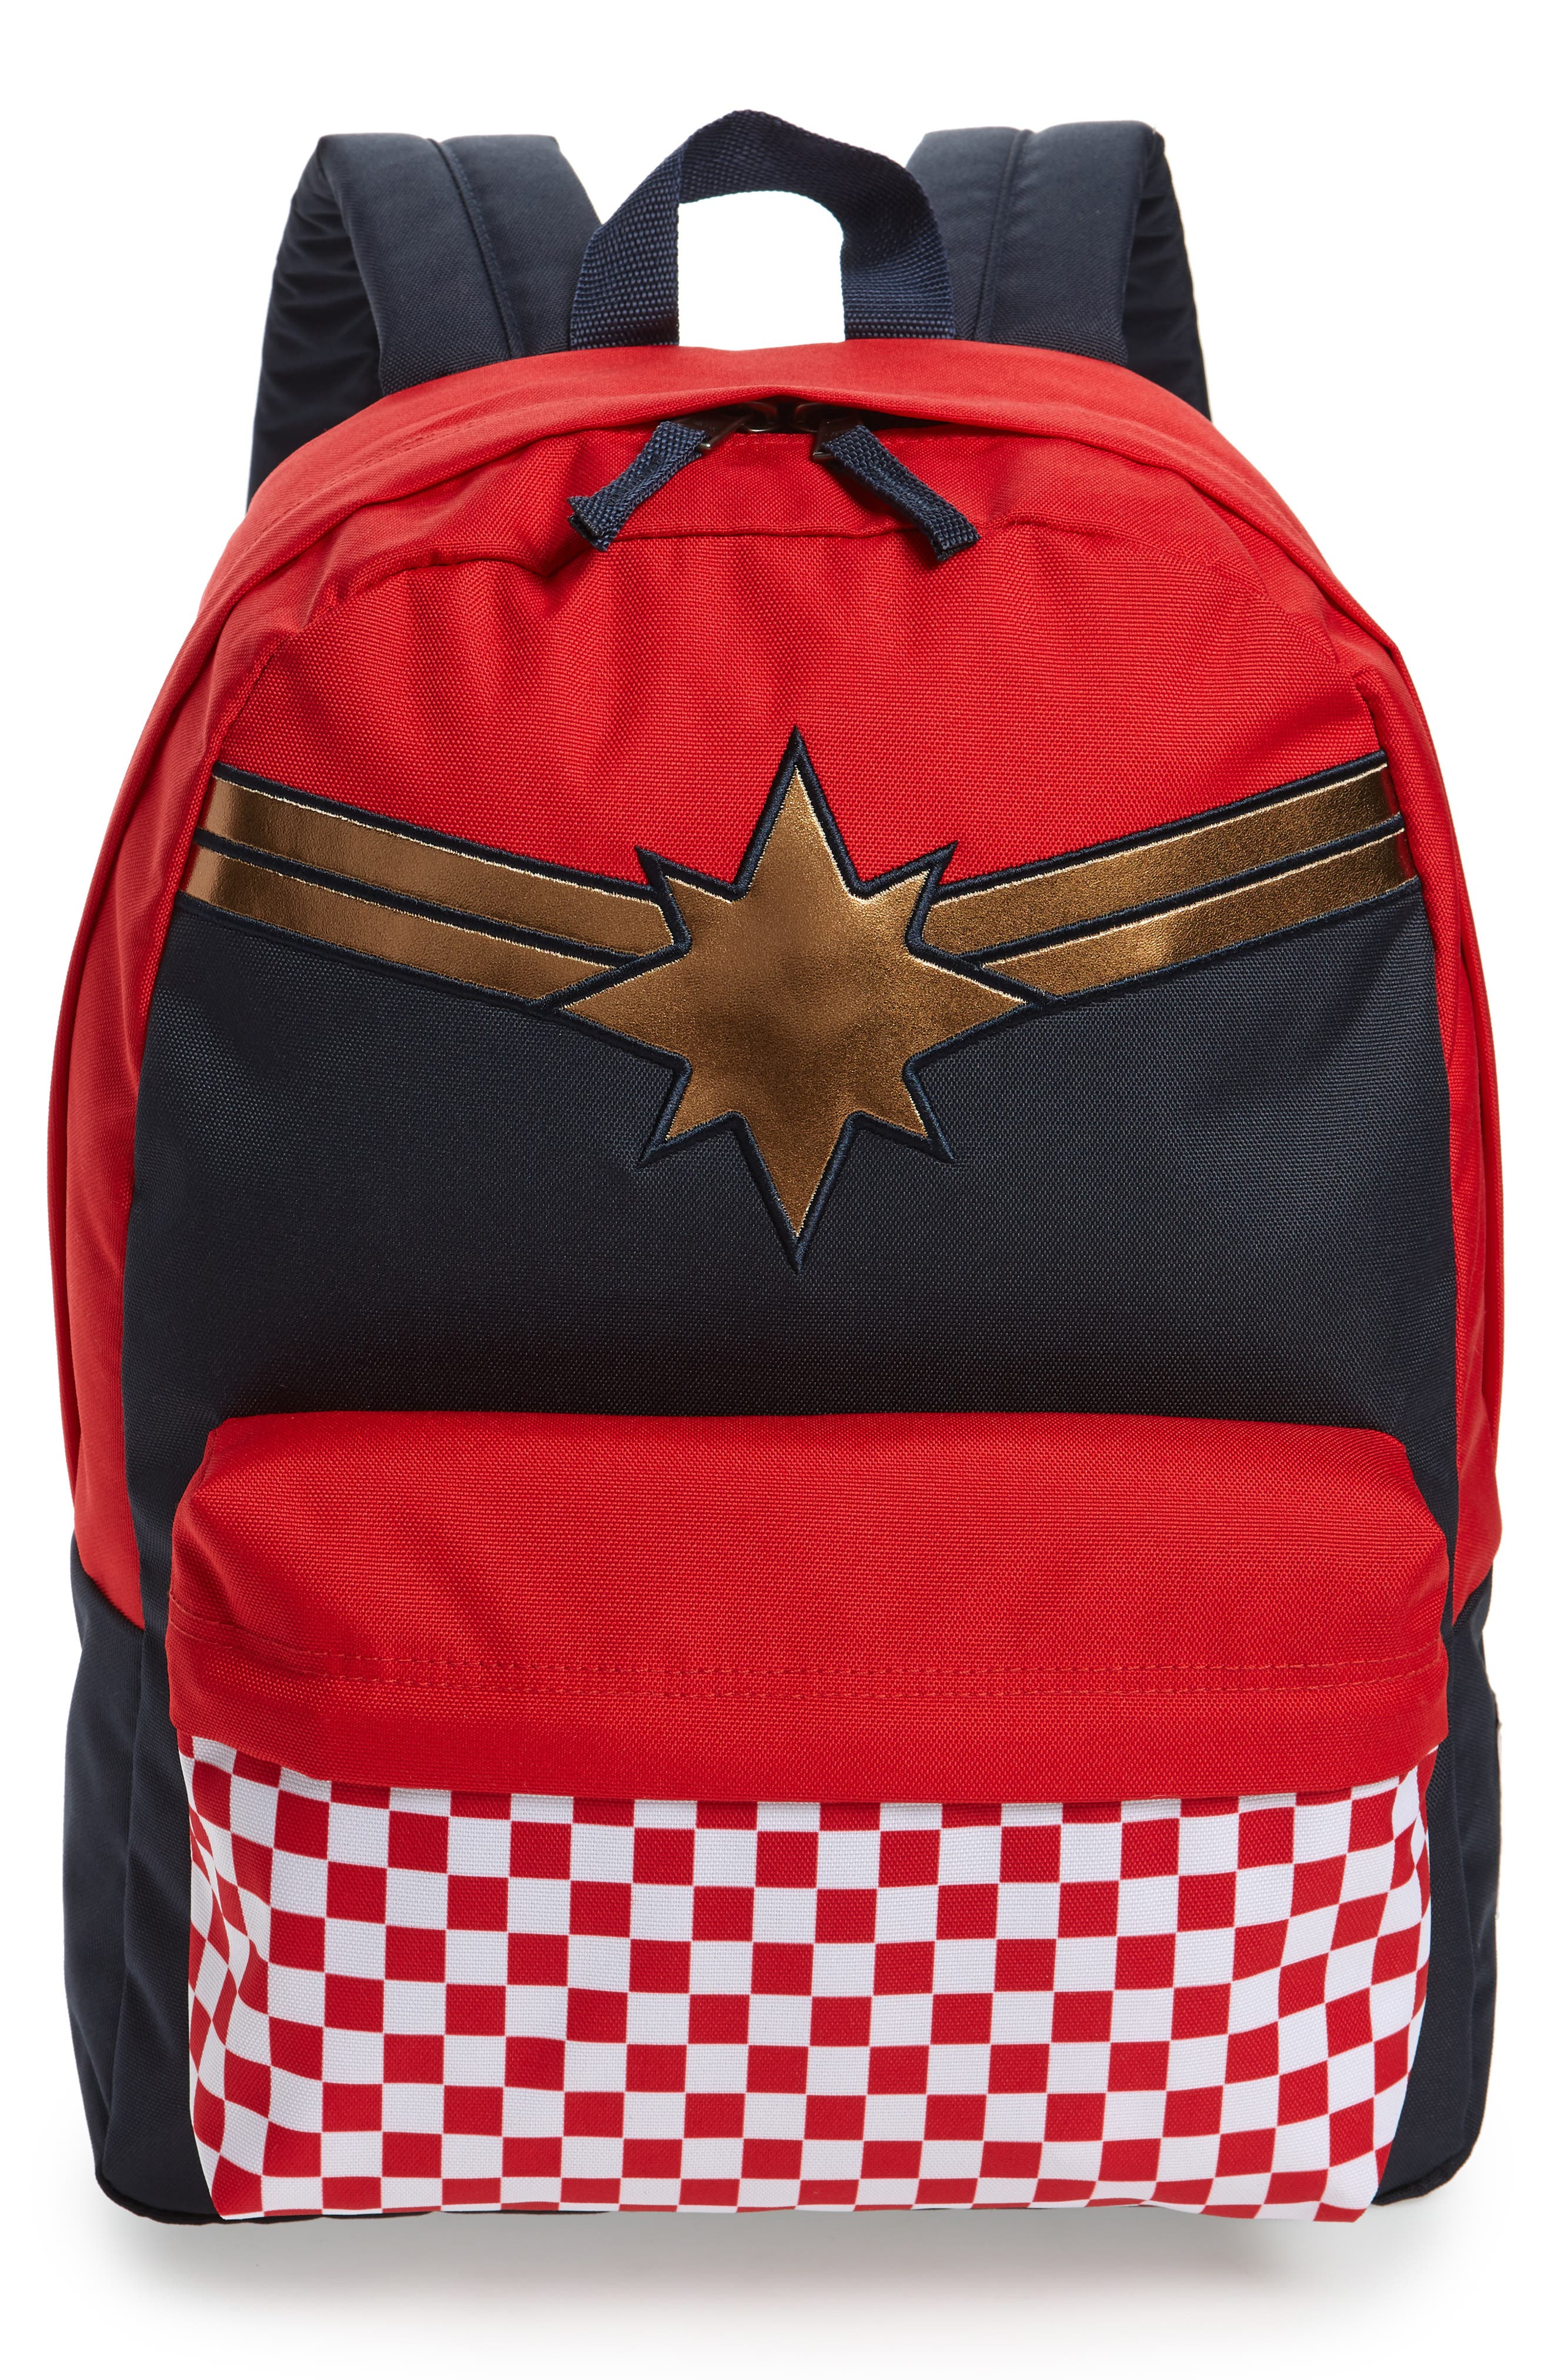 x Marvel<sup>®</sup> Captain Marvel Realm Backpack,                             Main thumbnail 1, color,                             Racing Red